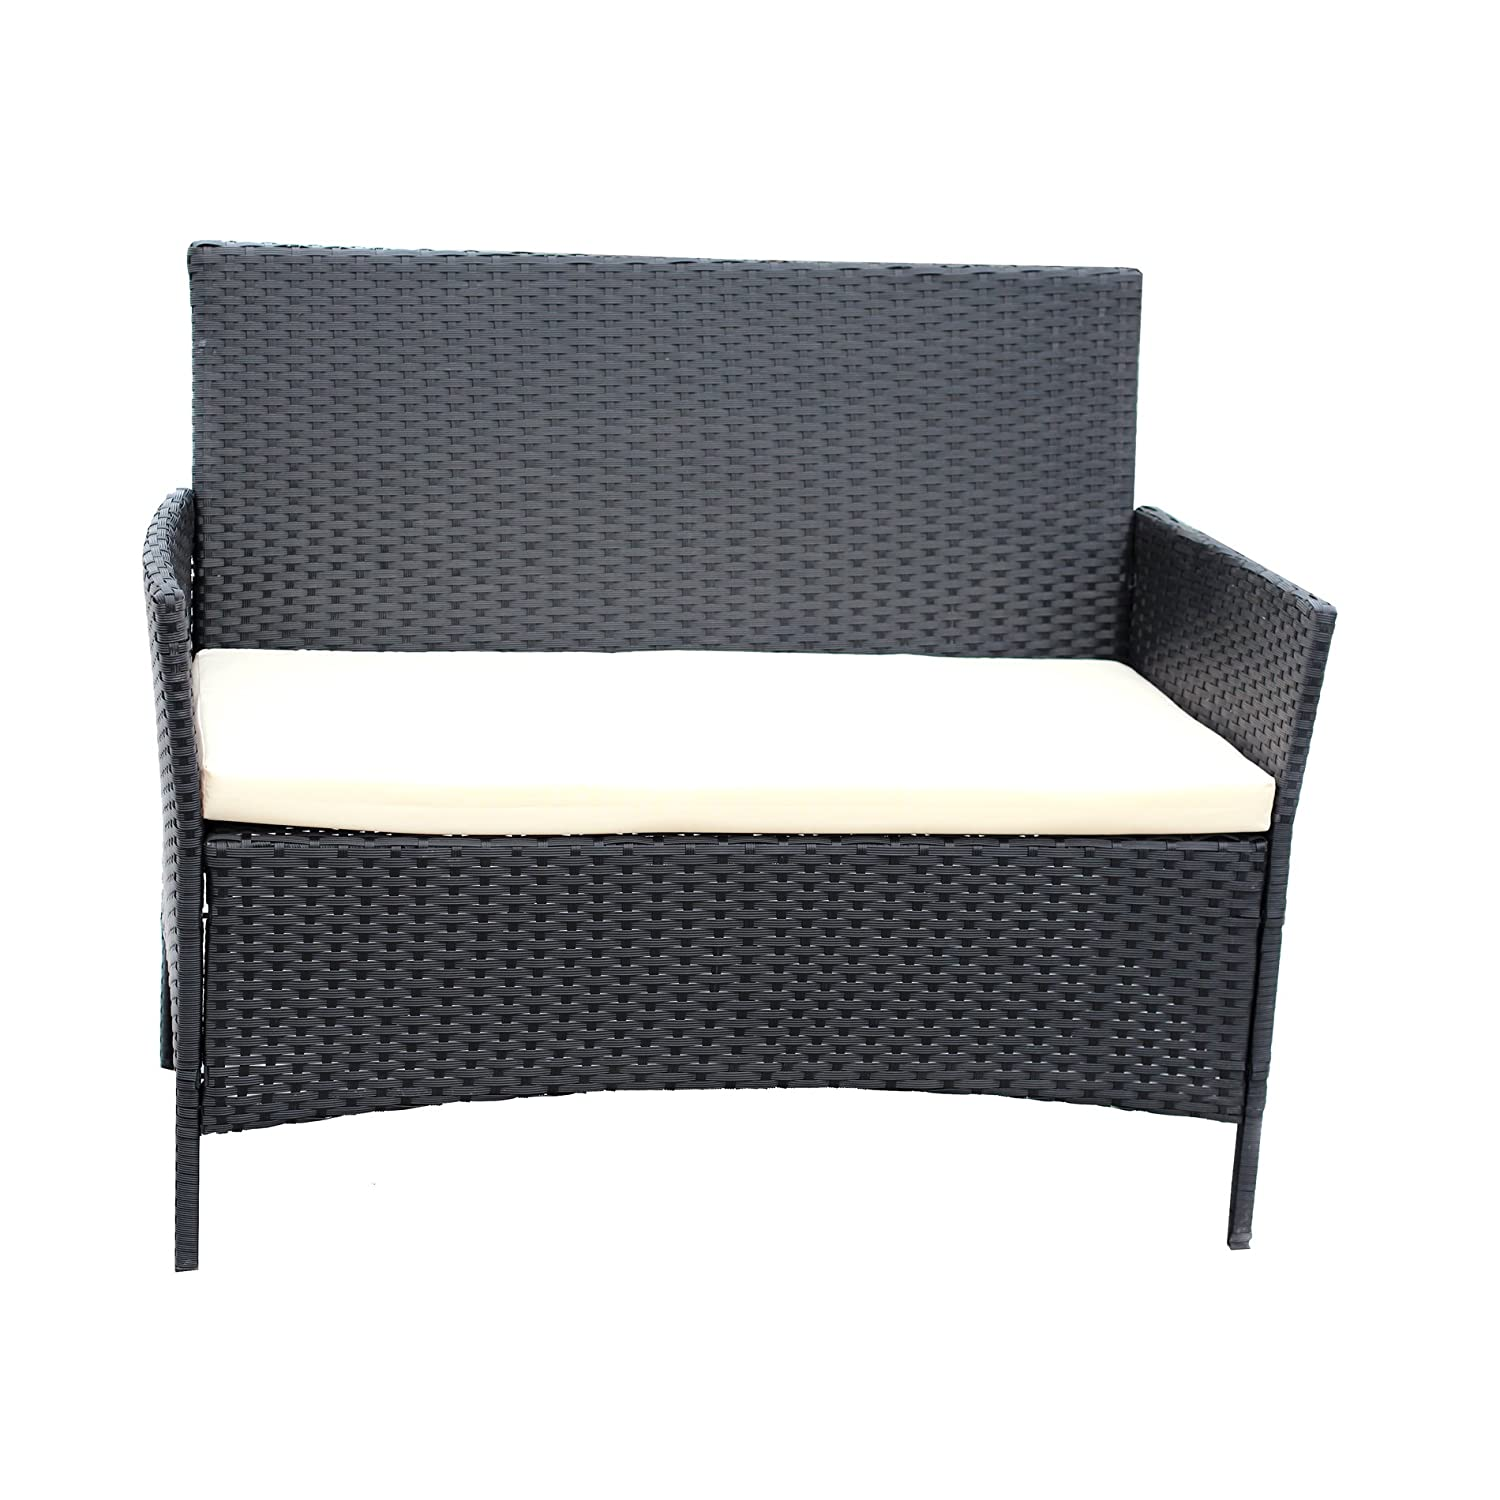 Amazon.com : Patio Furniture Set Clearance Rattan Wicker Dining Table Chair  Indoor Outdoor Furniture Set Balcony Sofa Bench (Black) : Patio, Lawn U0026  Garden